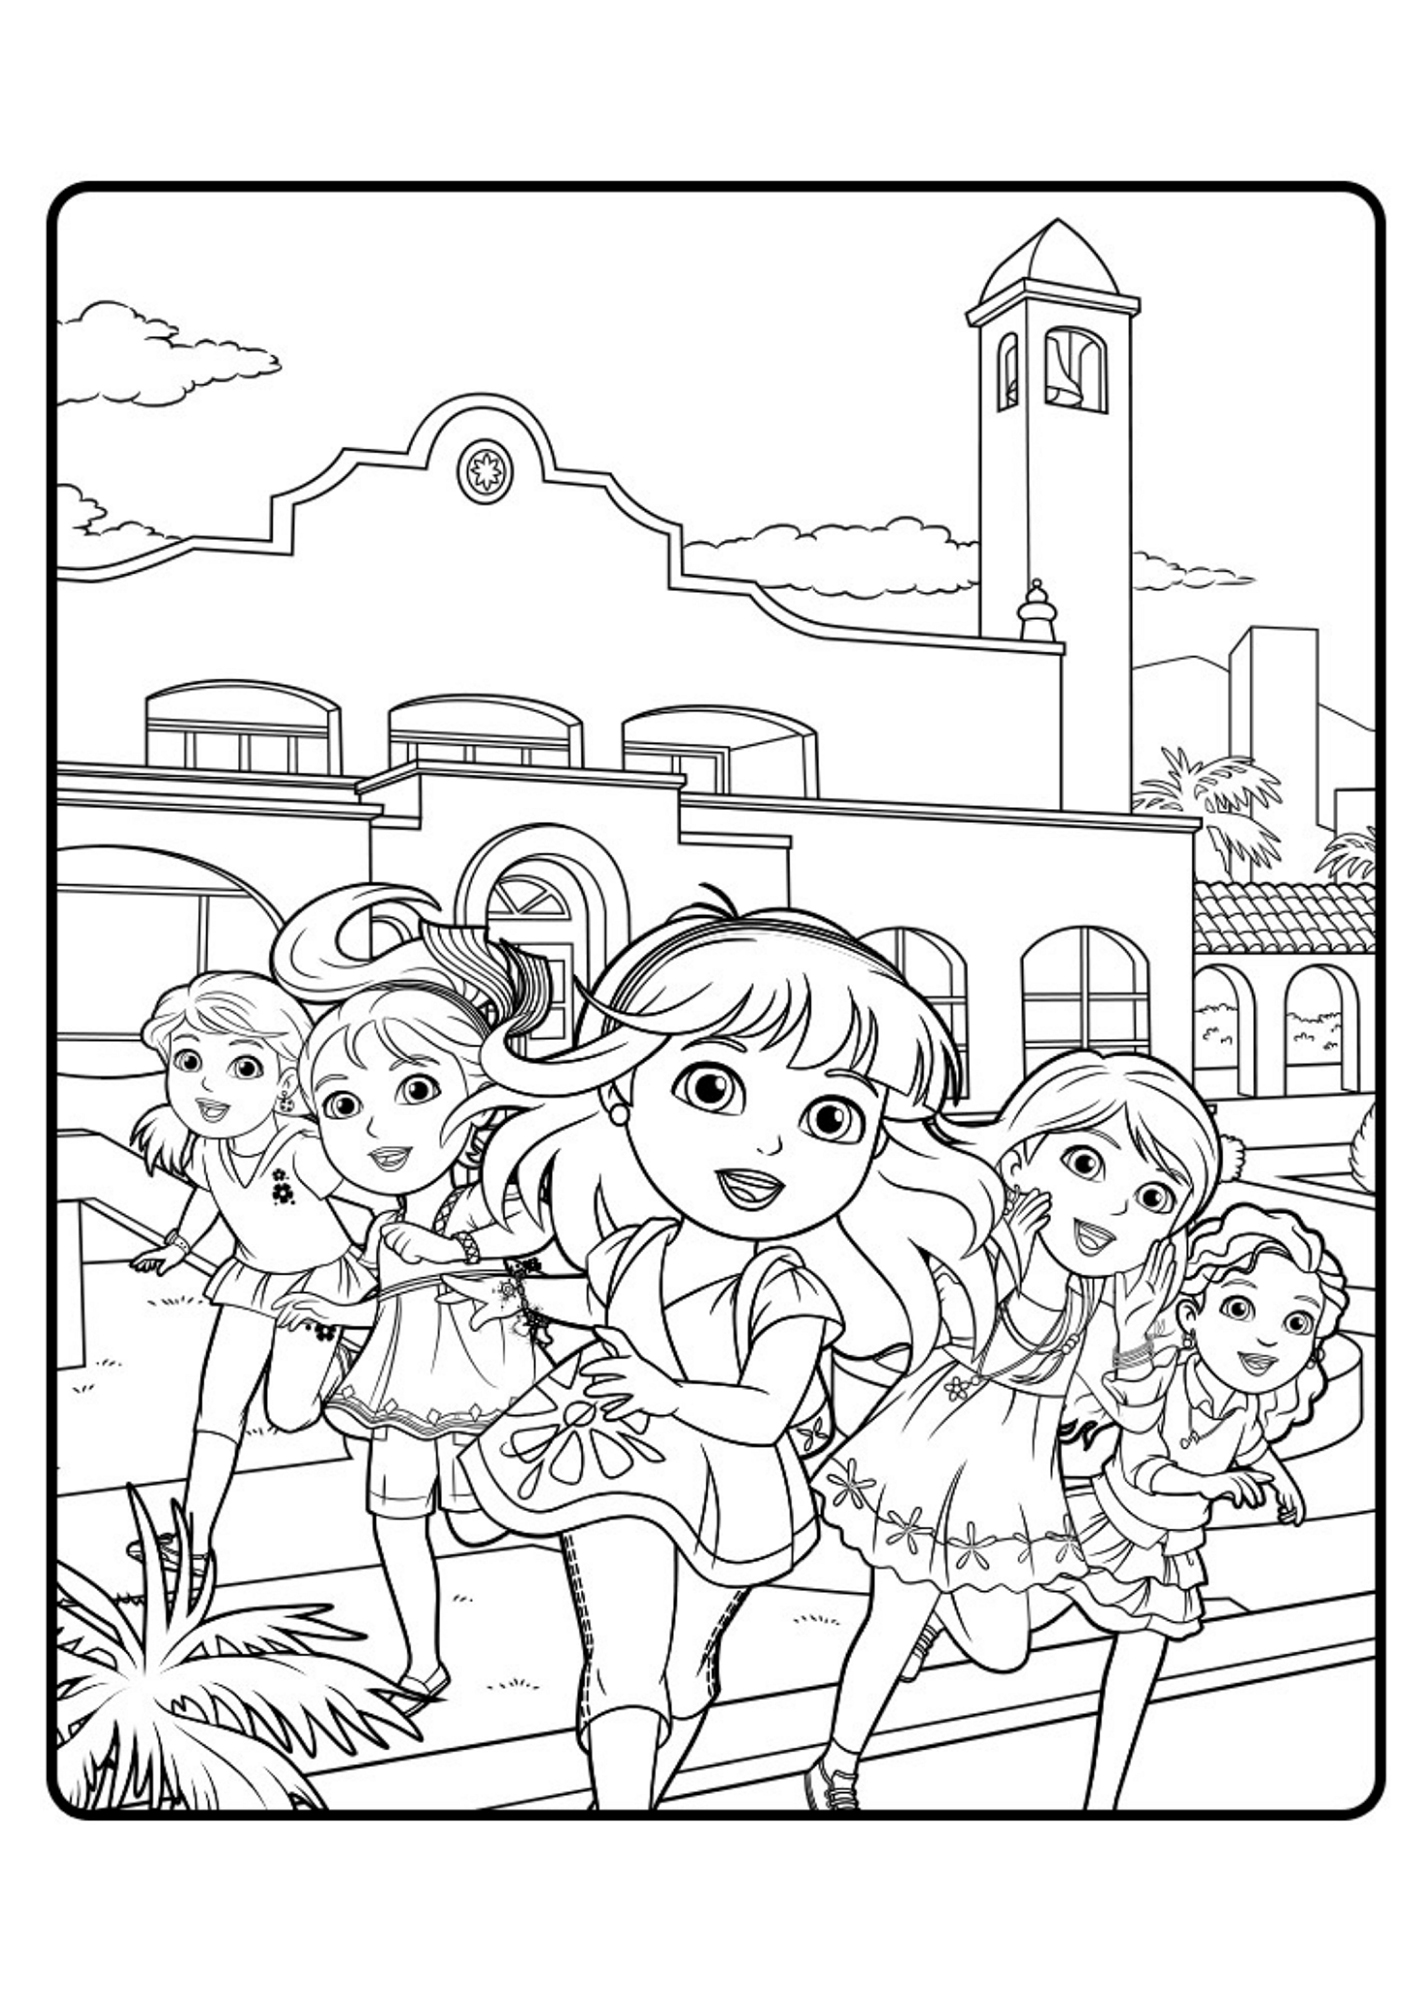 coloring pages dora and friends dora and friends coloring pages to download and print for free and coloring dora pages friends